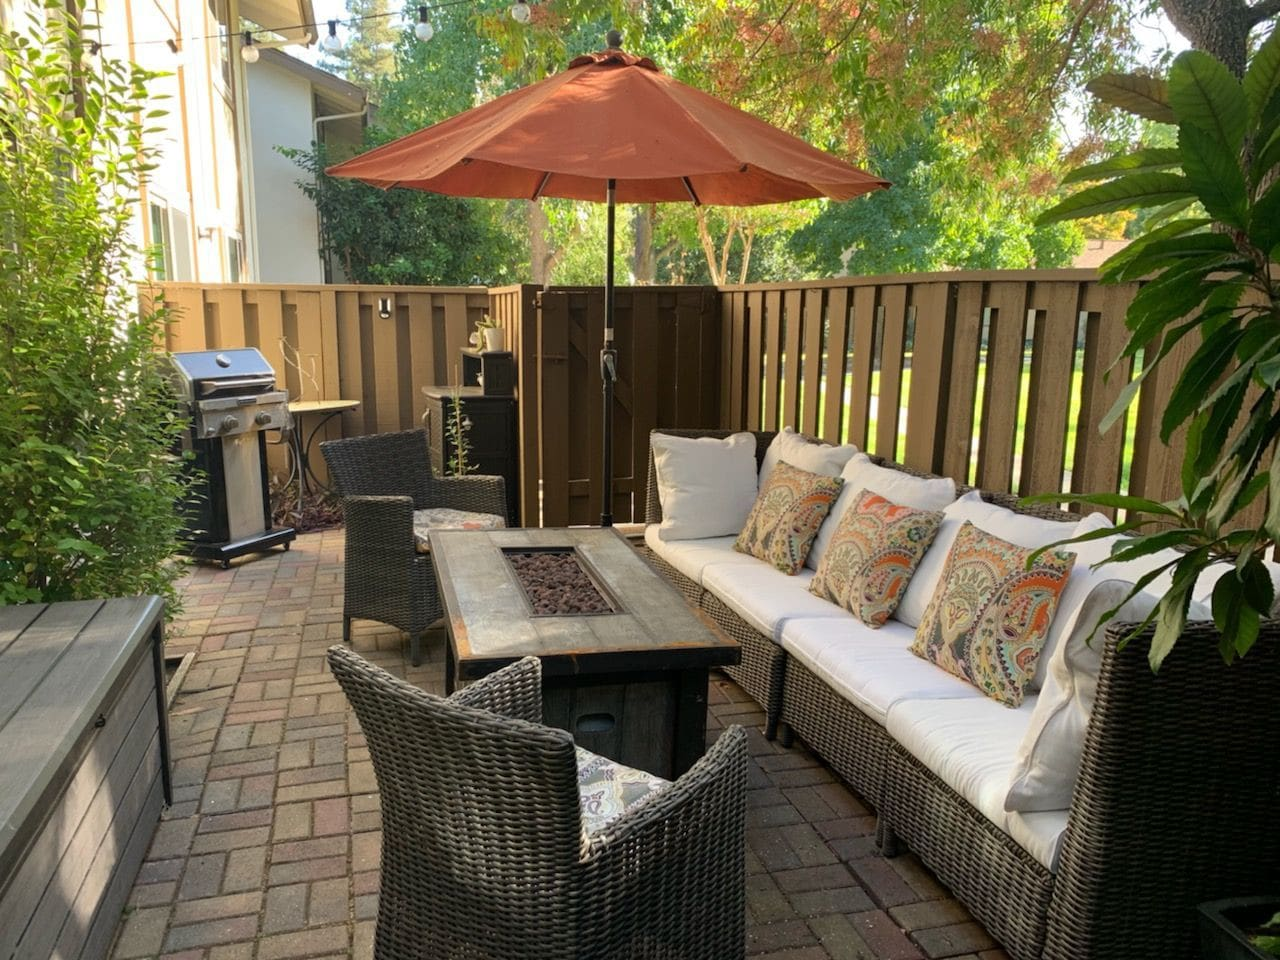 Back patio with fire pit and bbq grill in background.